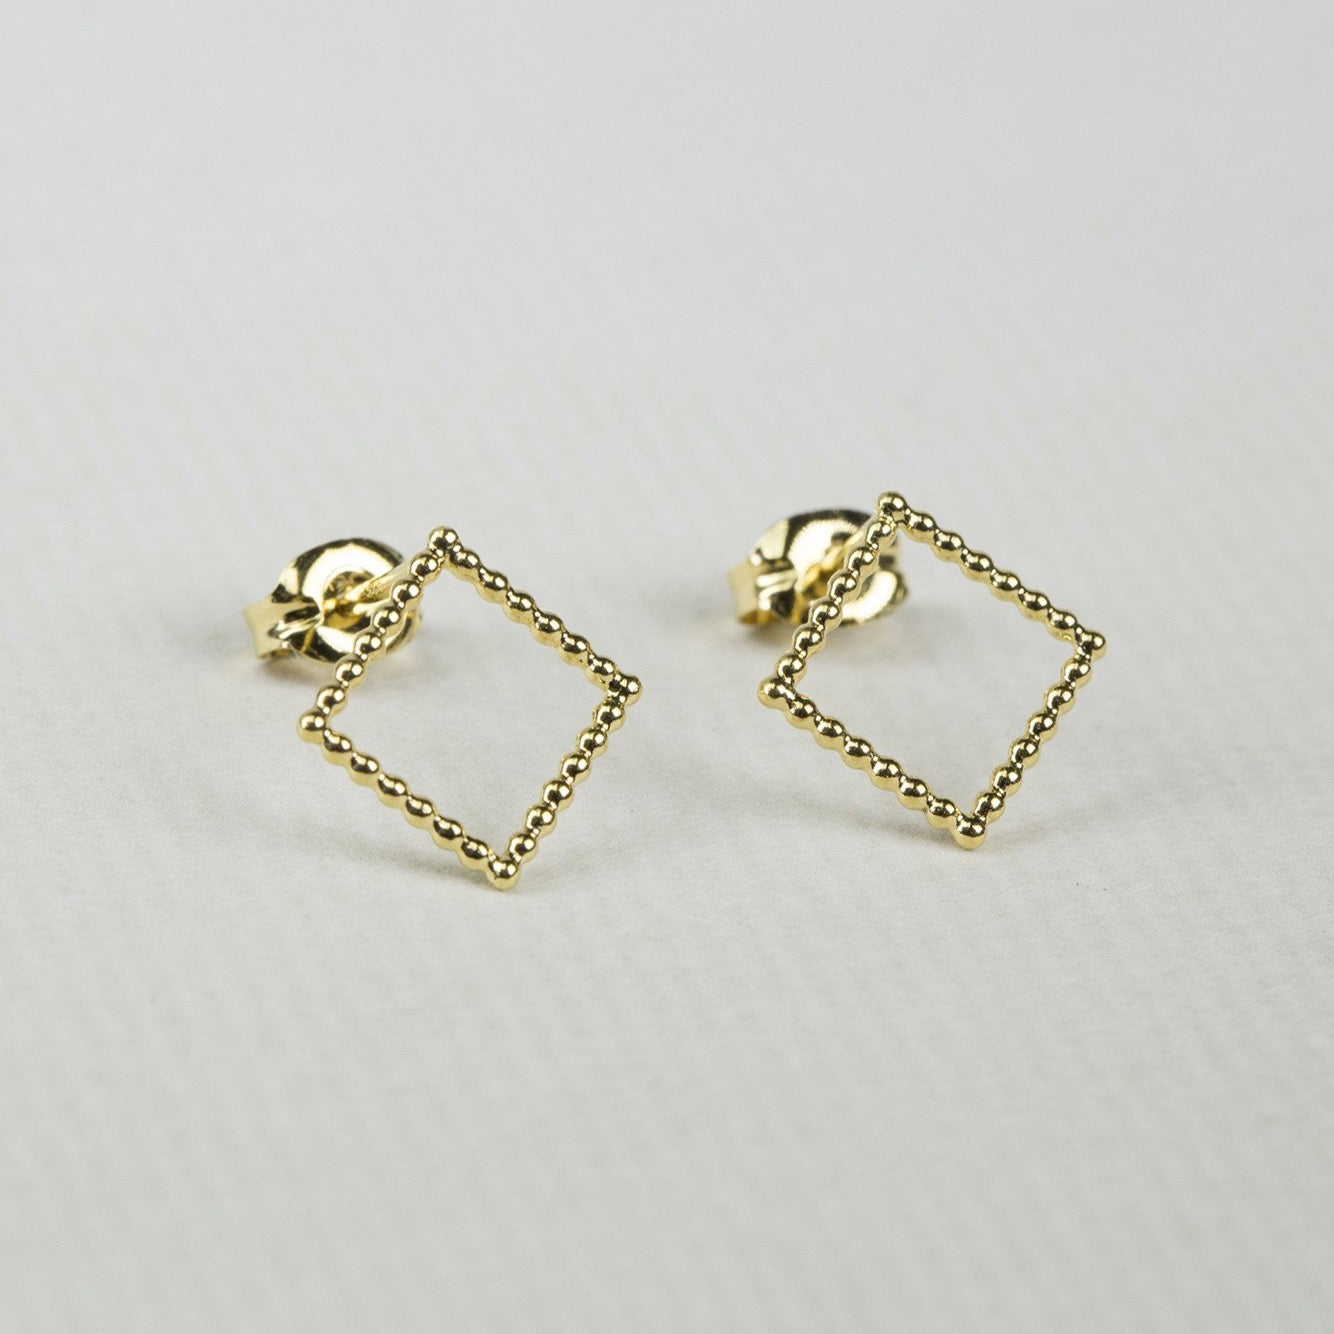 'Beaded' Gold Plated Square Stud Earrings